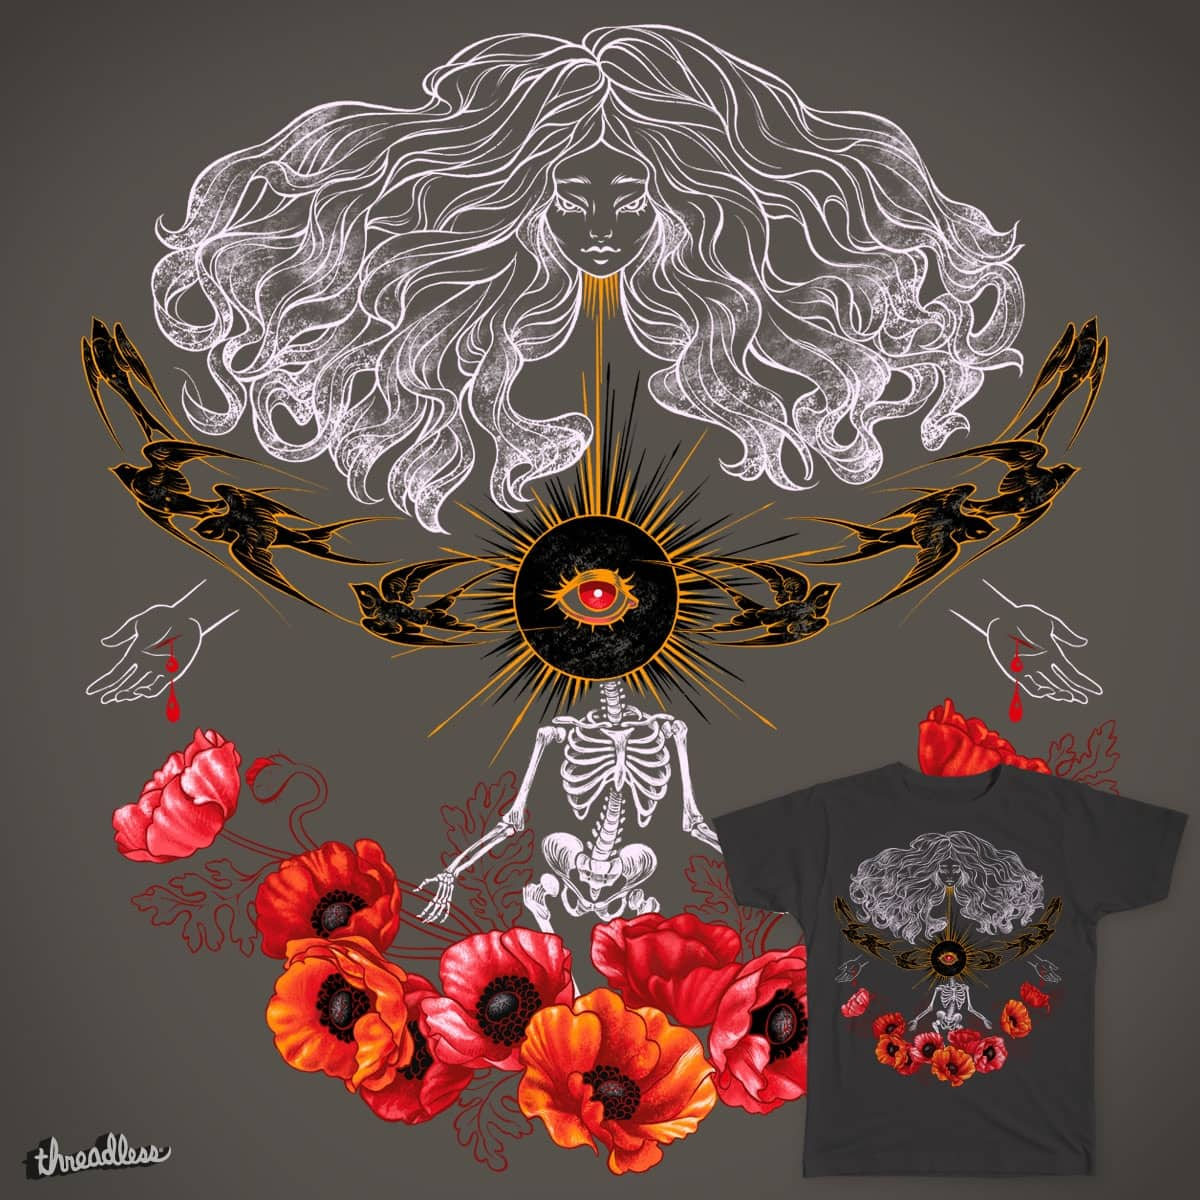 Superstition by Tamisery on Threadless